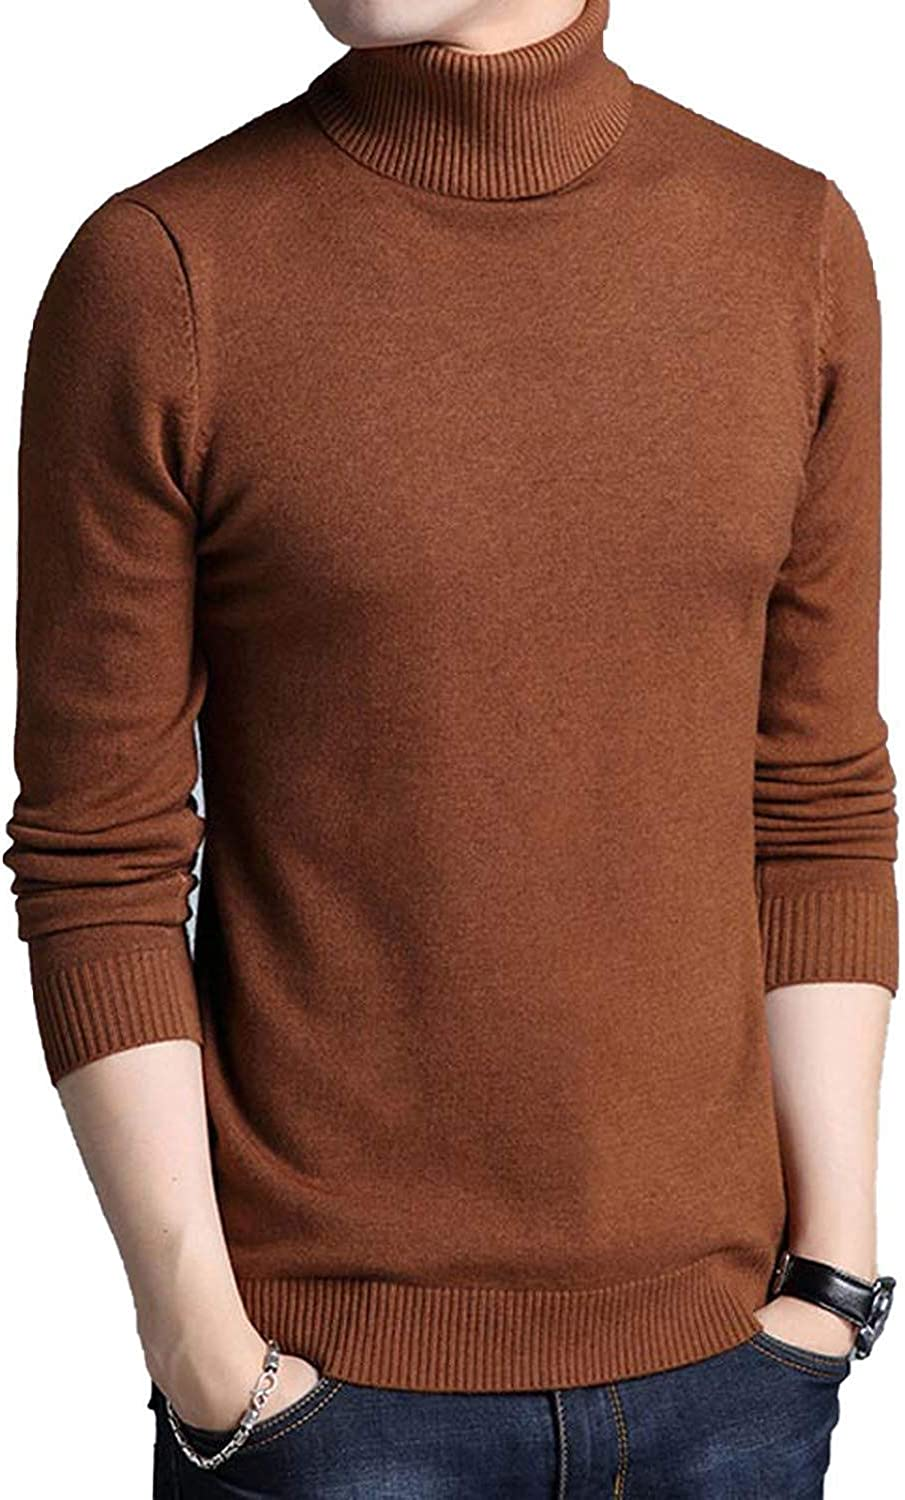 Friendshiy 2019 New Winter Mens Sweater Mens Turtleneck Solid Color Casual Sweater,Medium,Coffee